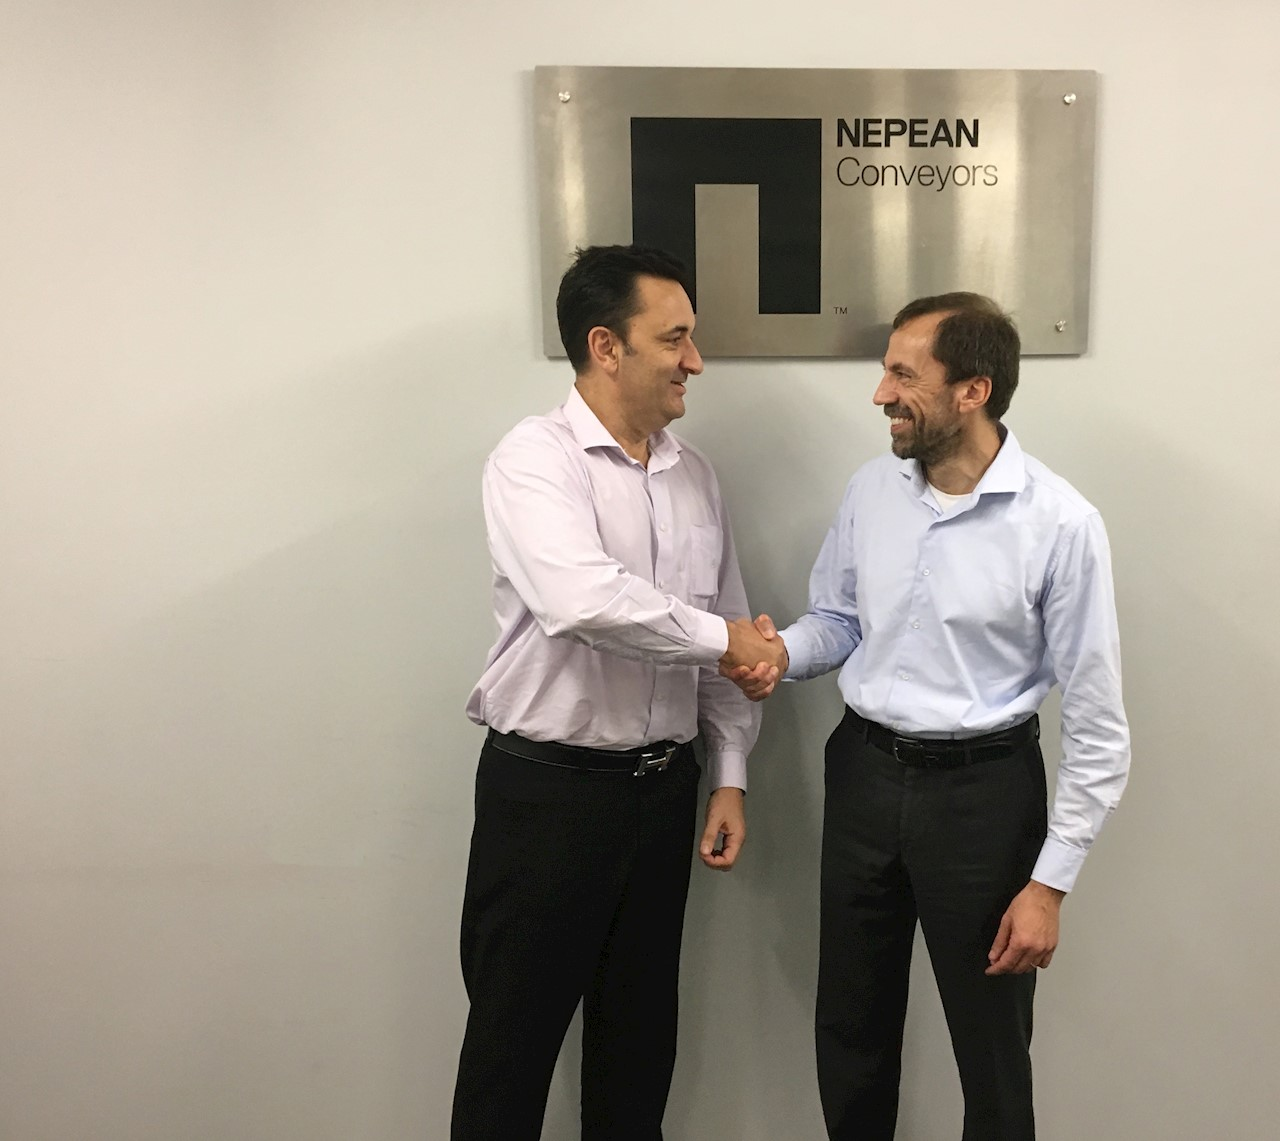 Quintin Roberts, General Manager, NEPEAN Conveyors Queensland (left) and Giovanni Pedrinoni, Local Business Unit Manager, Motors and Generators, ABB in Australia